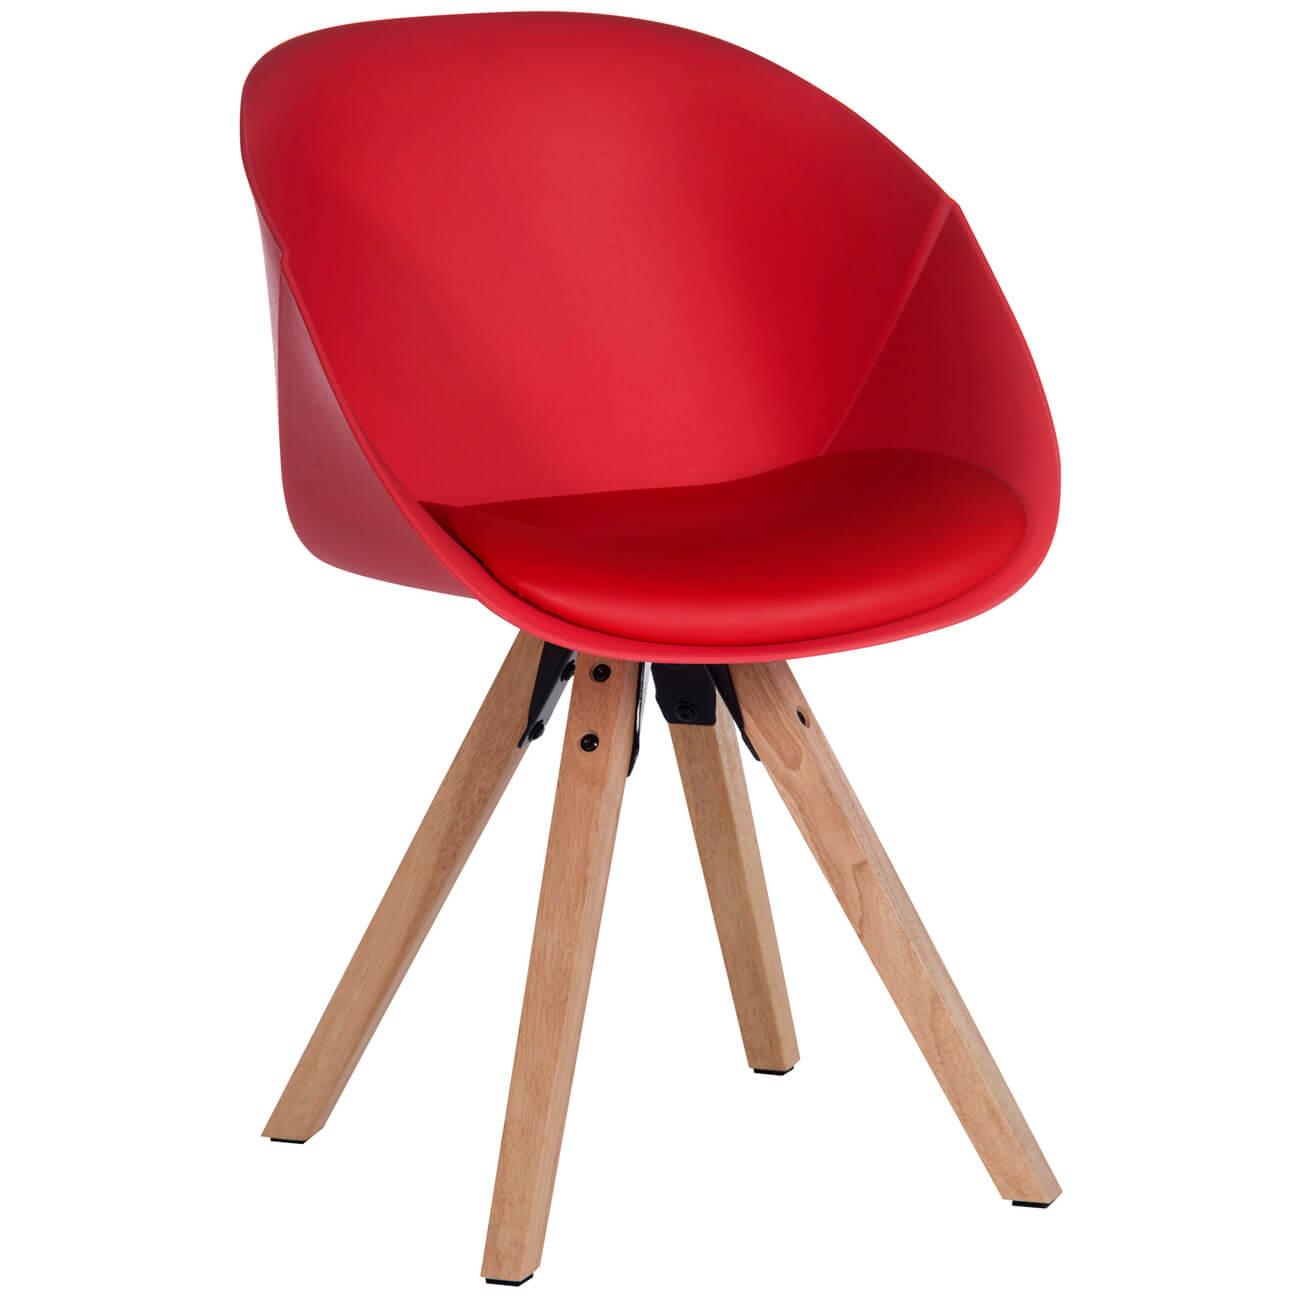 Zula Padded Tub Dining Chair Red (Pairs)